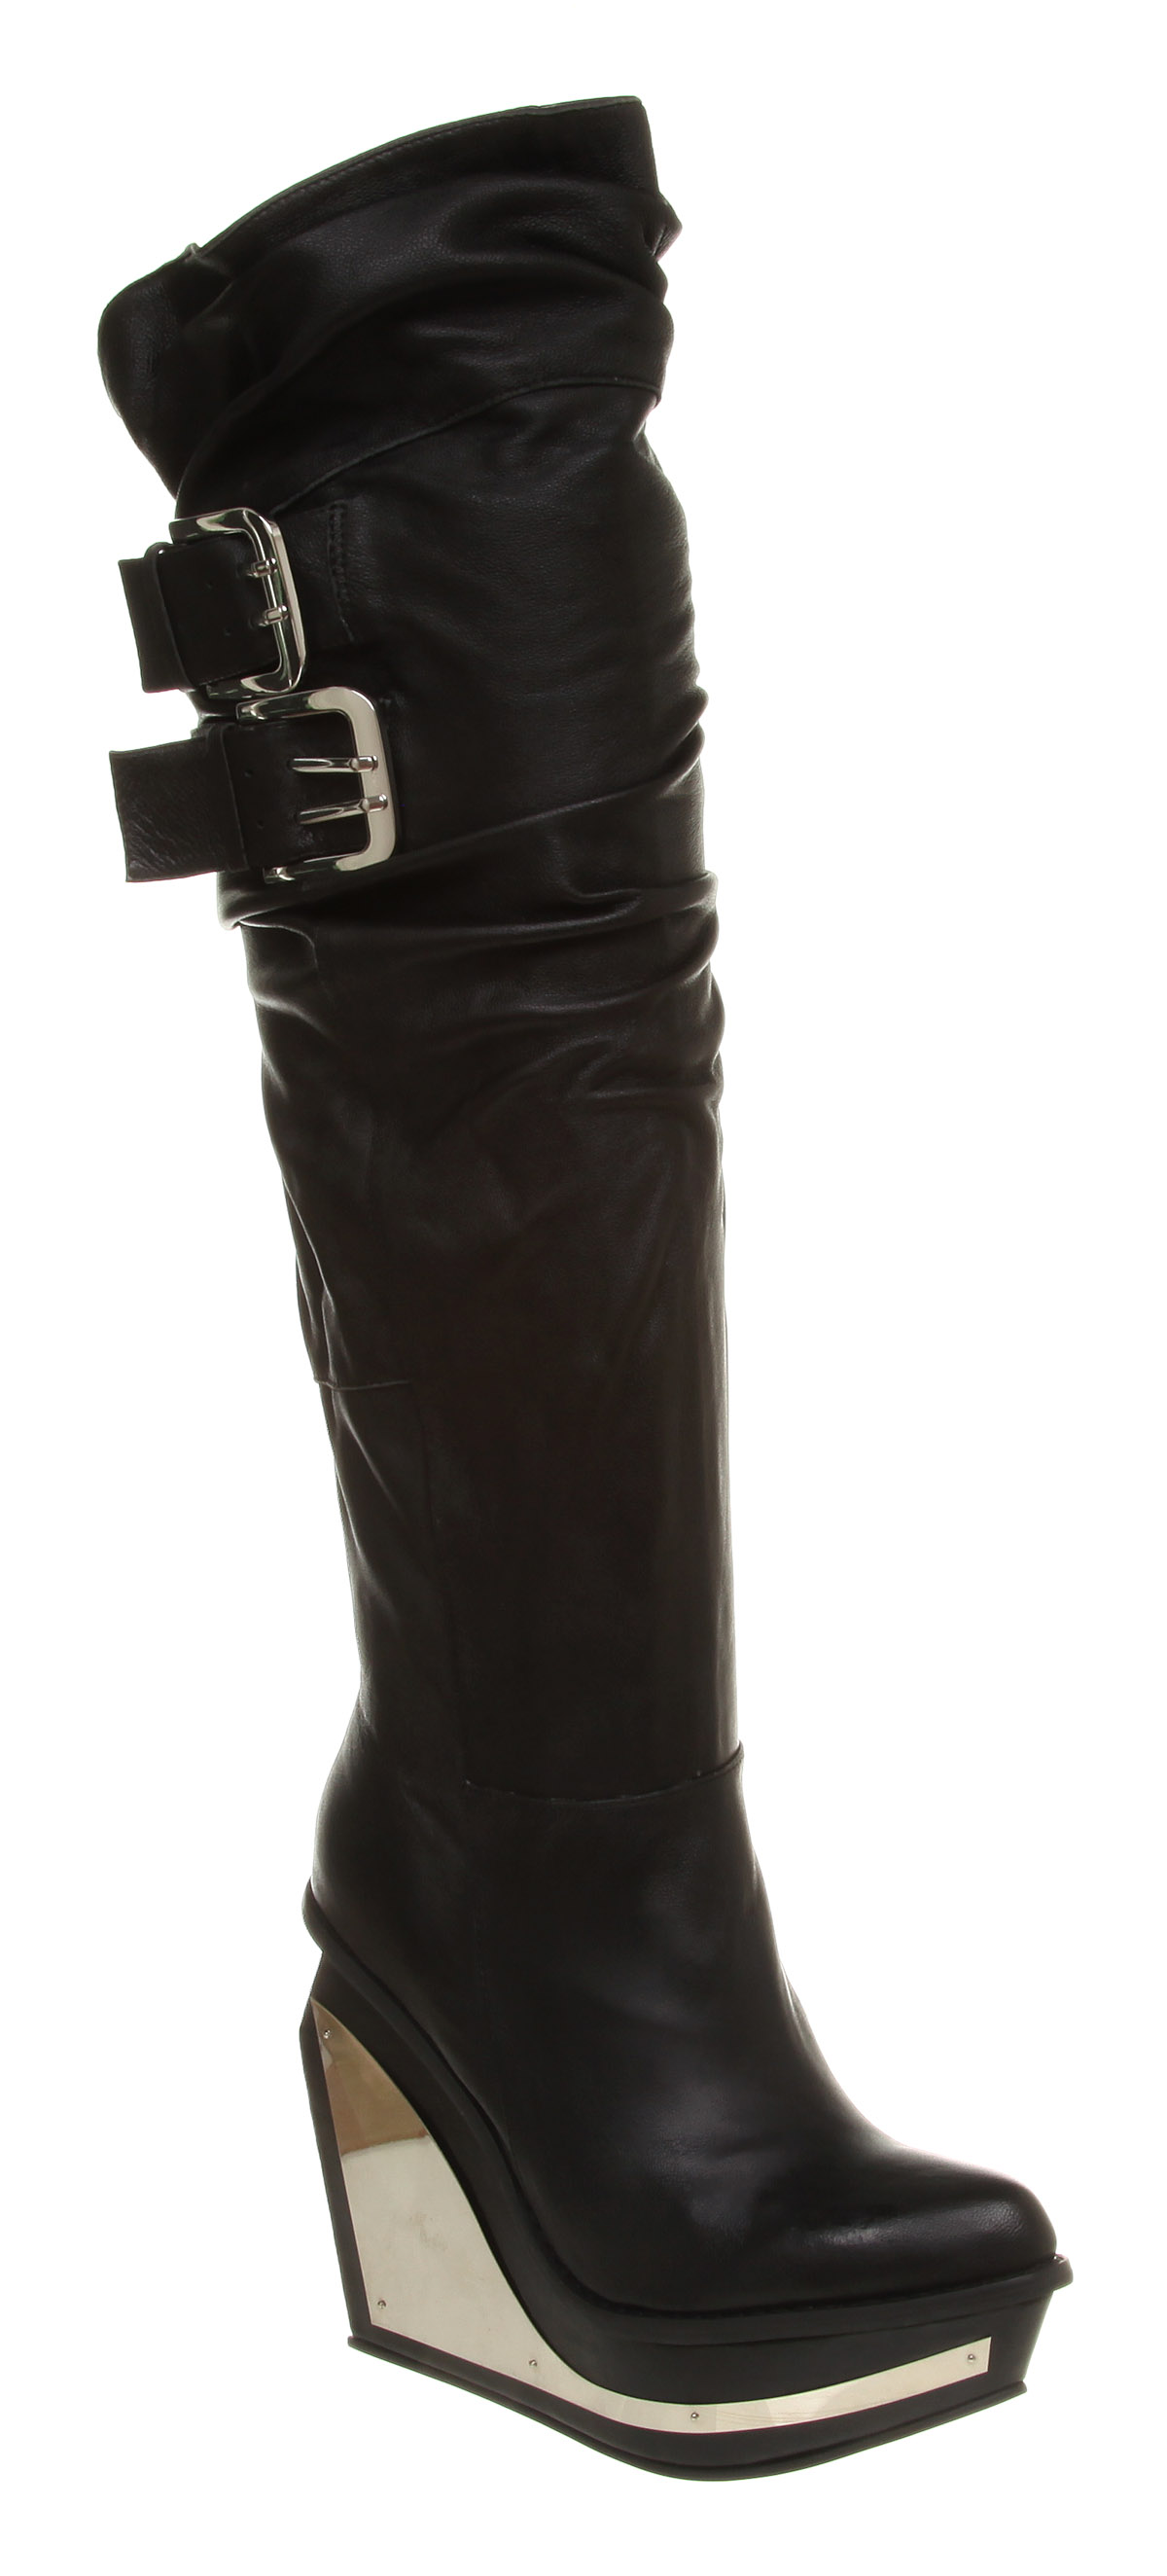 Vegan knee high wedge boots